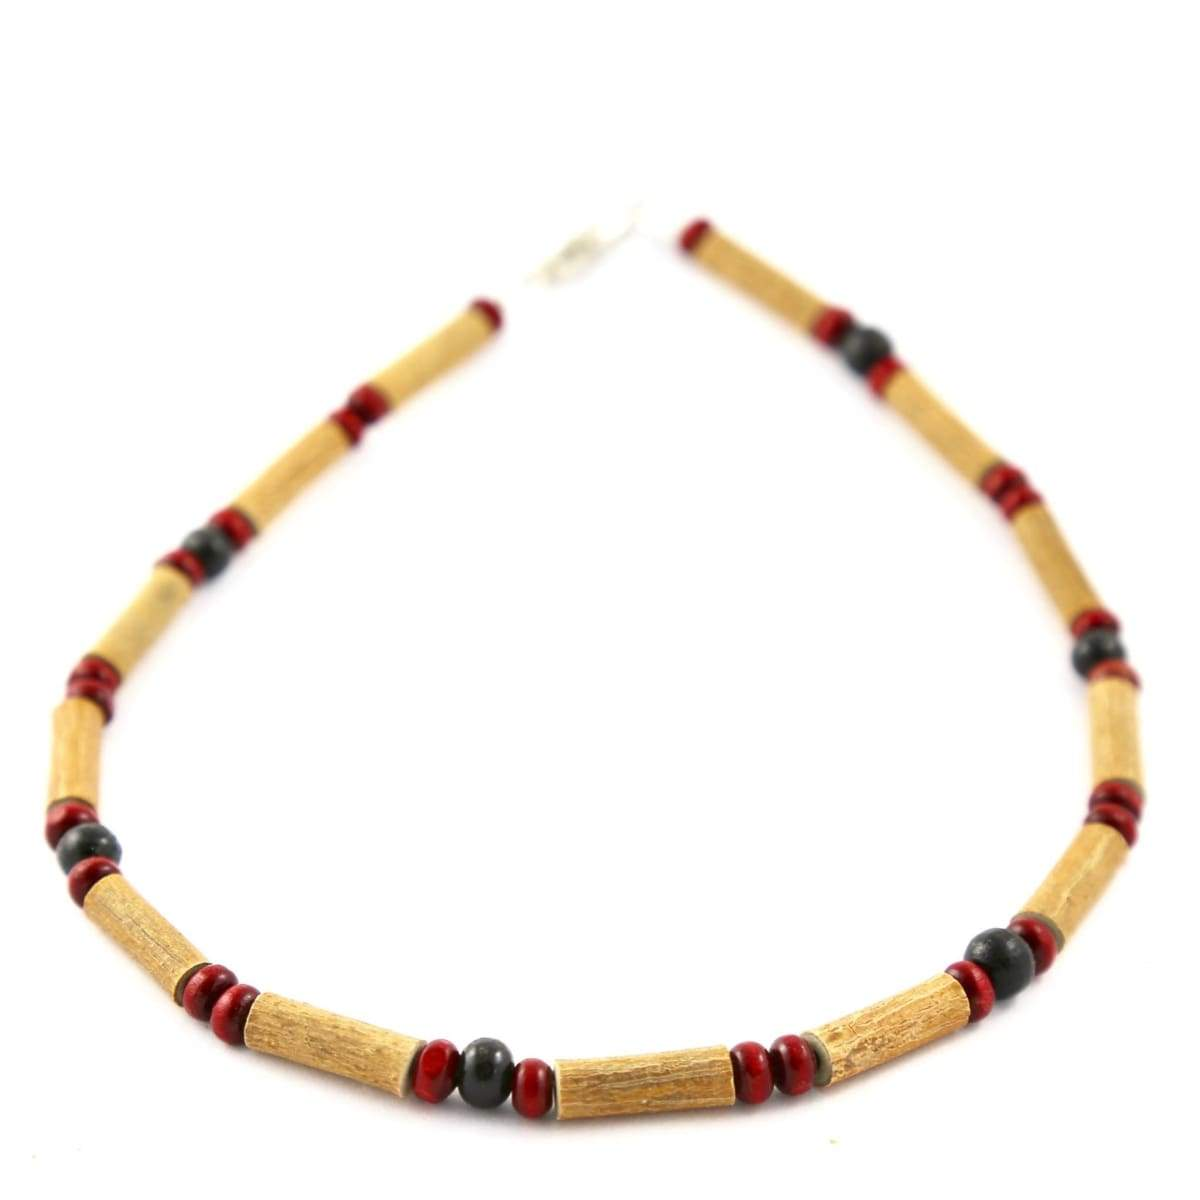 Hazelwood Burgundy & Black - 11 Necklace- - Barrel Twist Clasp - Hazelwood Jewelry